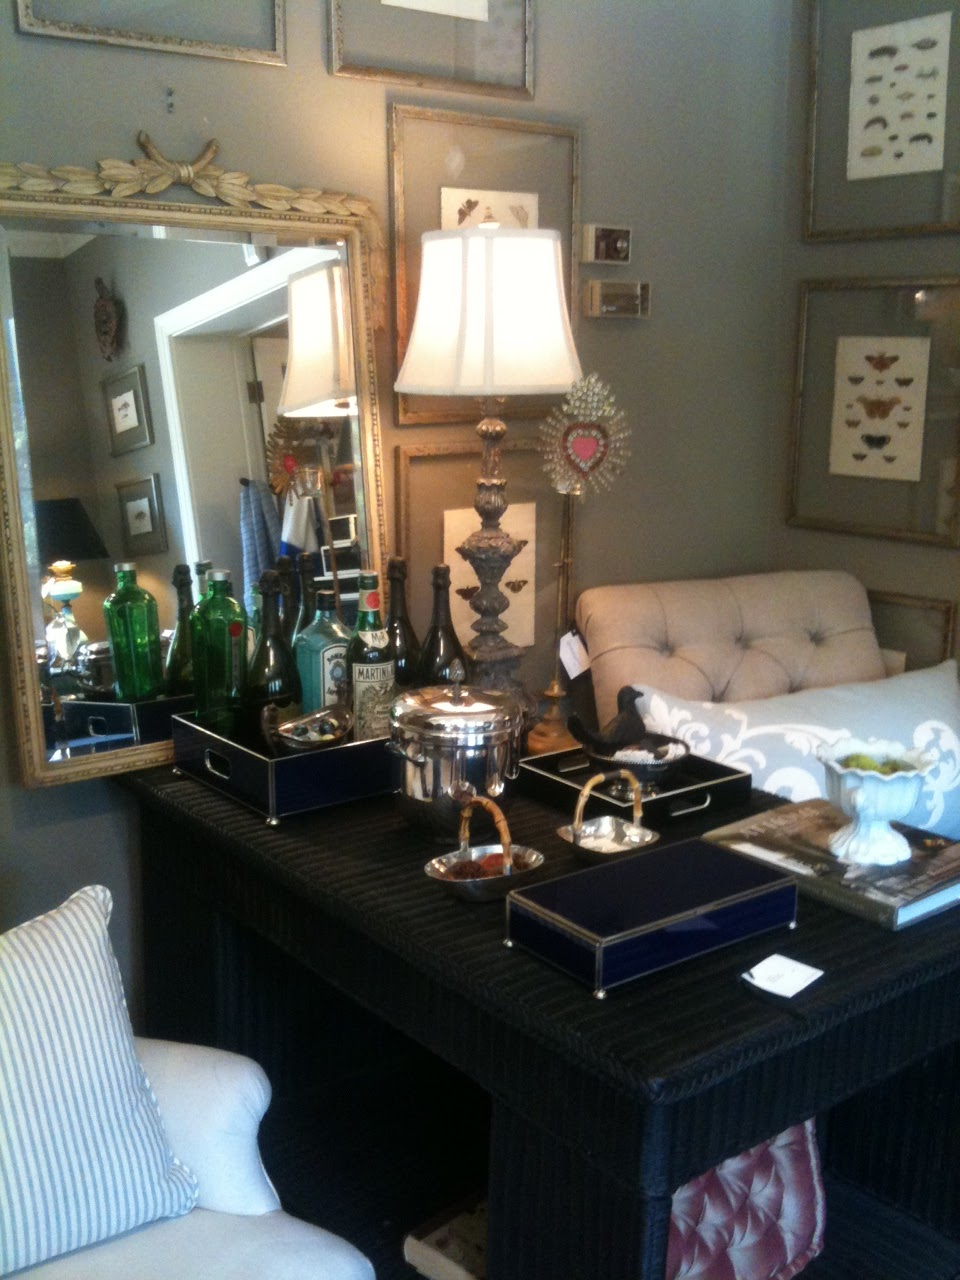 Flair for Design: Shopping in Charlottesville